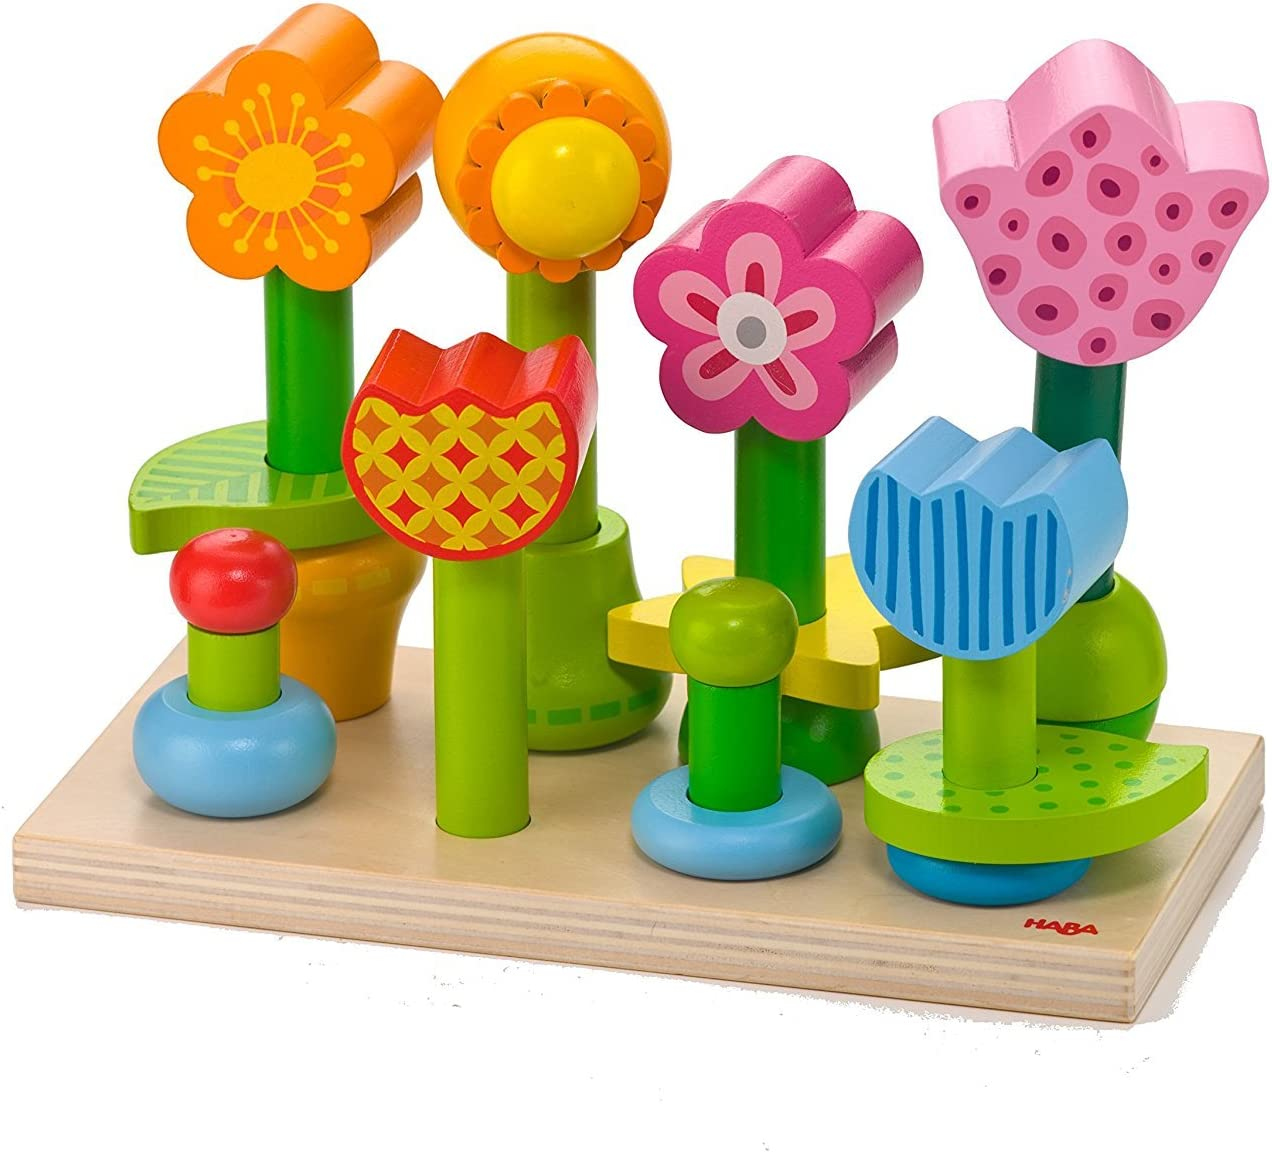 HABA Bonita Garden - 25 Piece Wooden Mix & Match Stacking Peg Toy